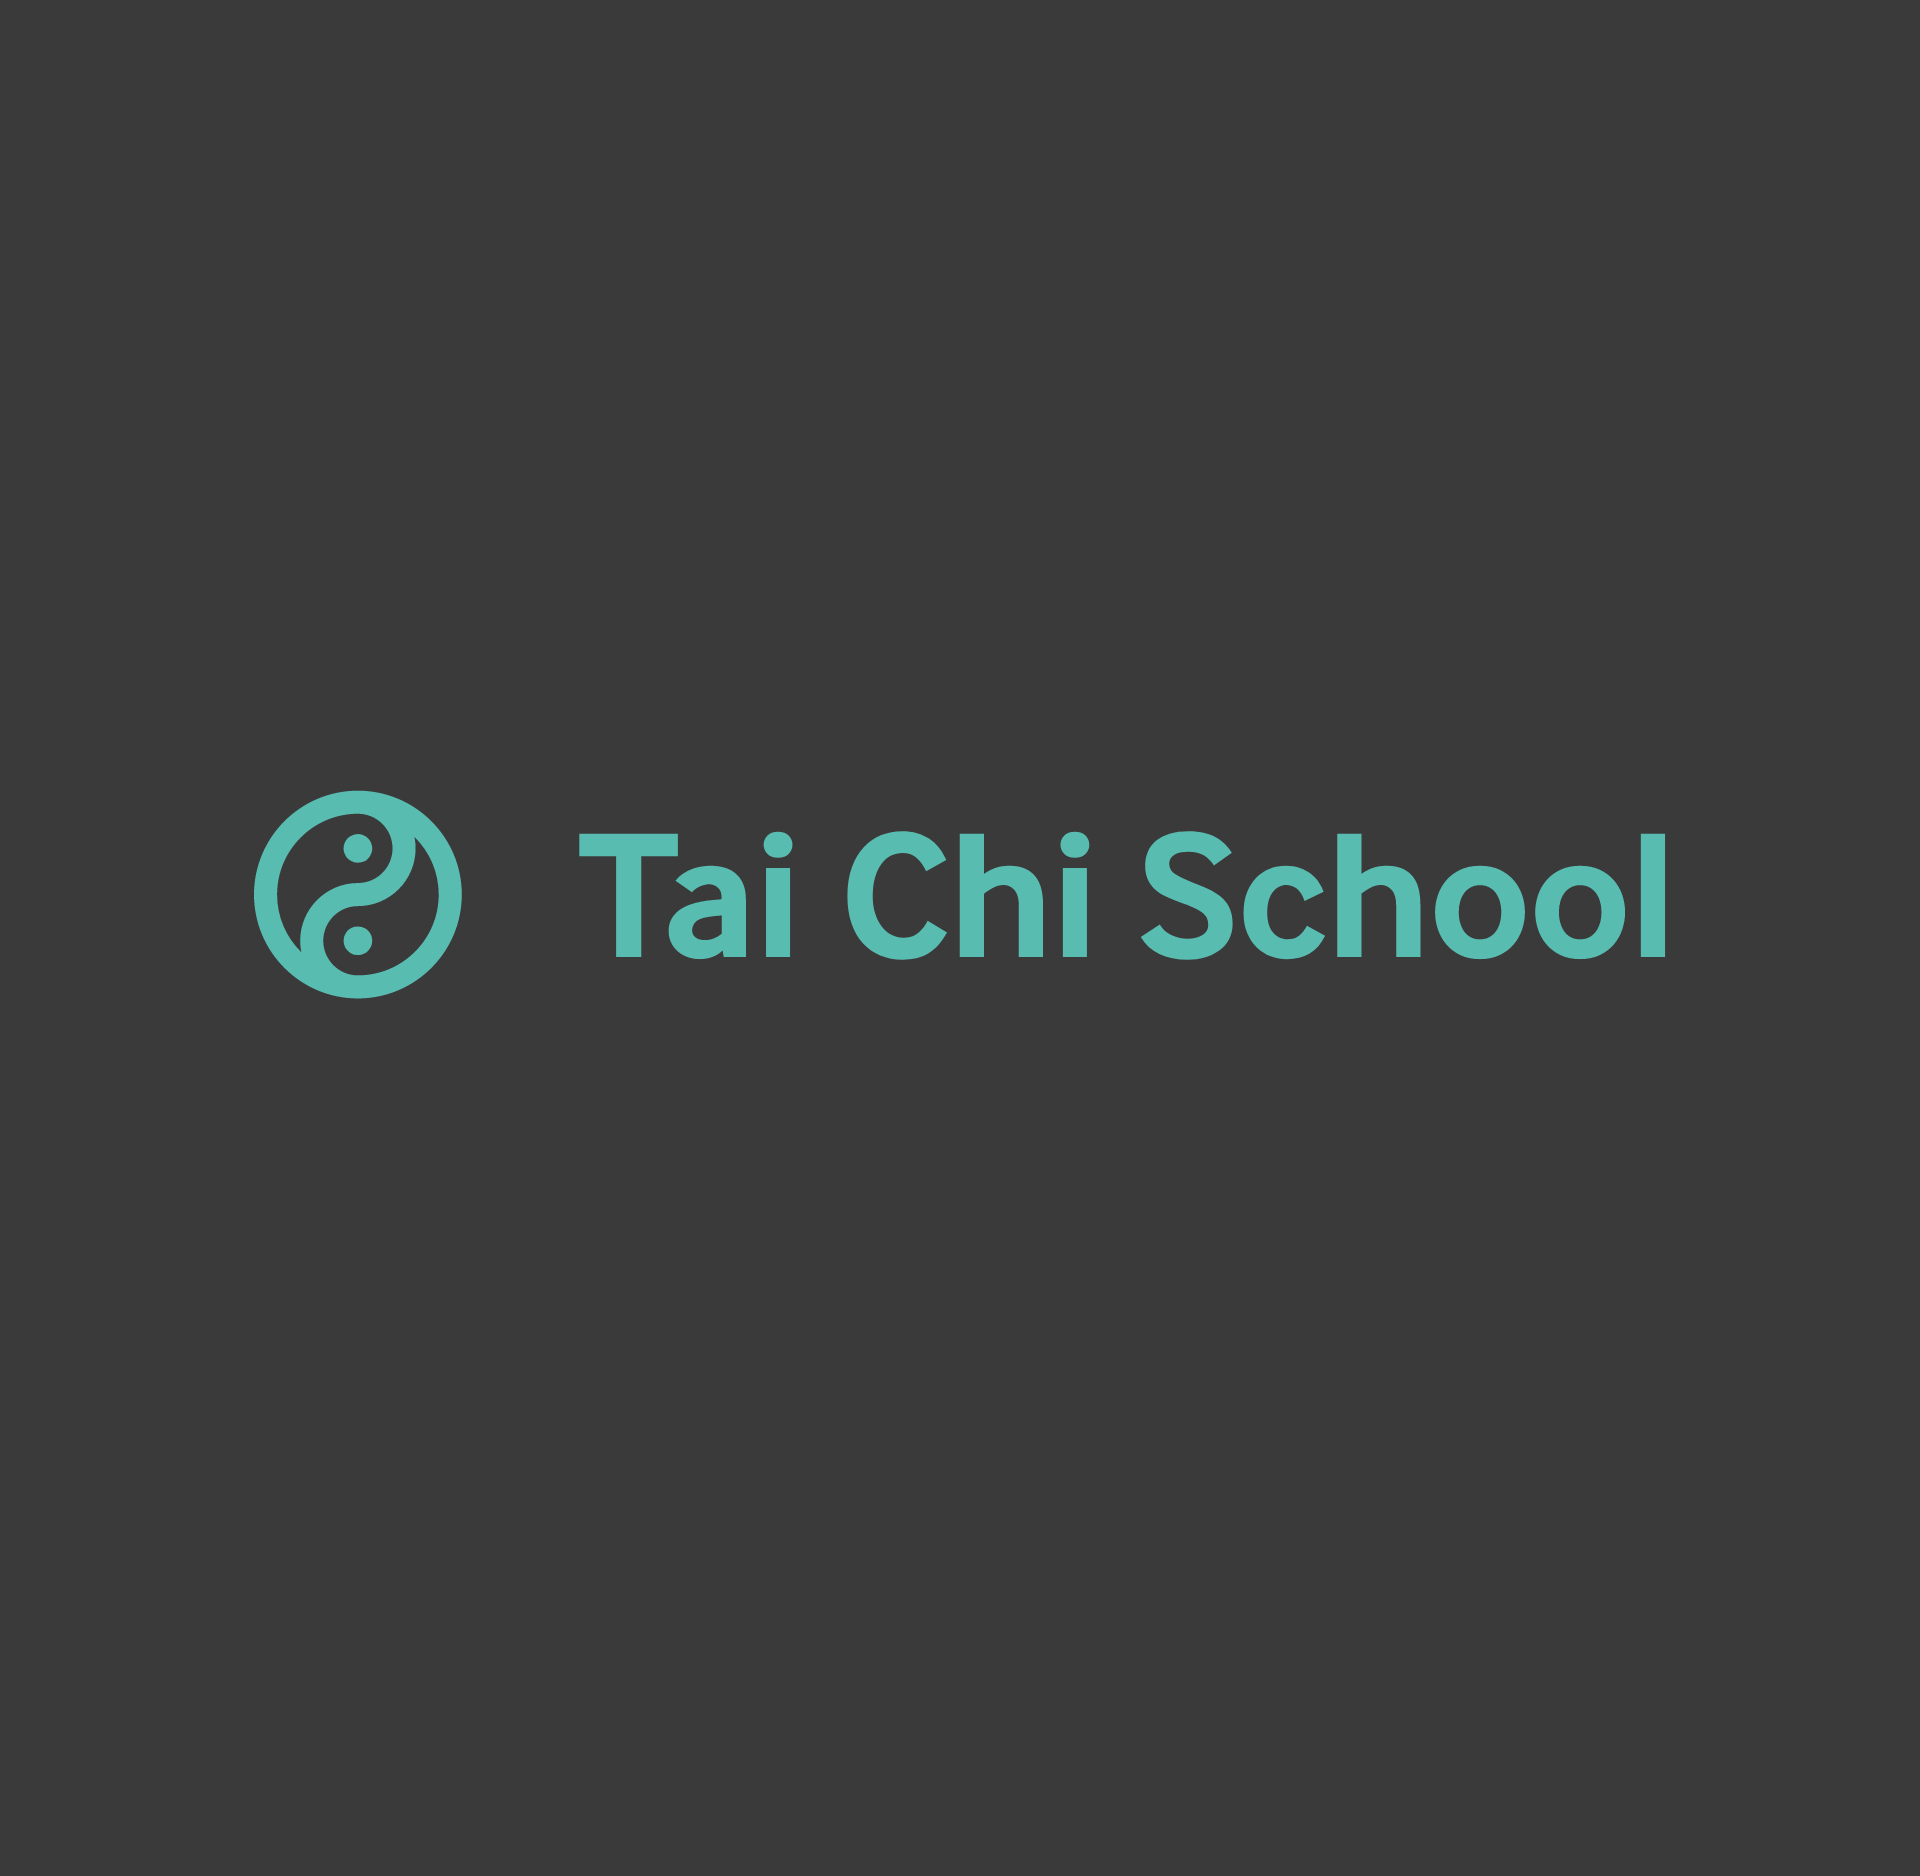 Tai Chi School logo in a teal colour on grey. The logo is very modern sans serif type with an understated thick linework version of the yin and yang symbol.